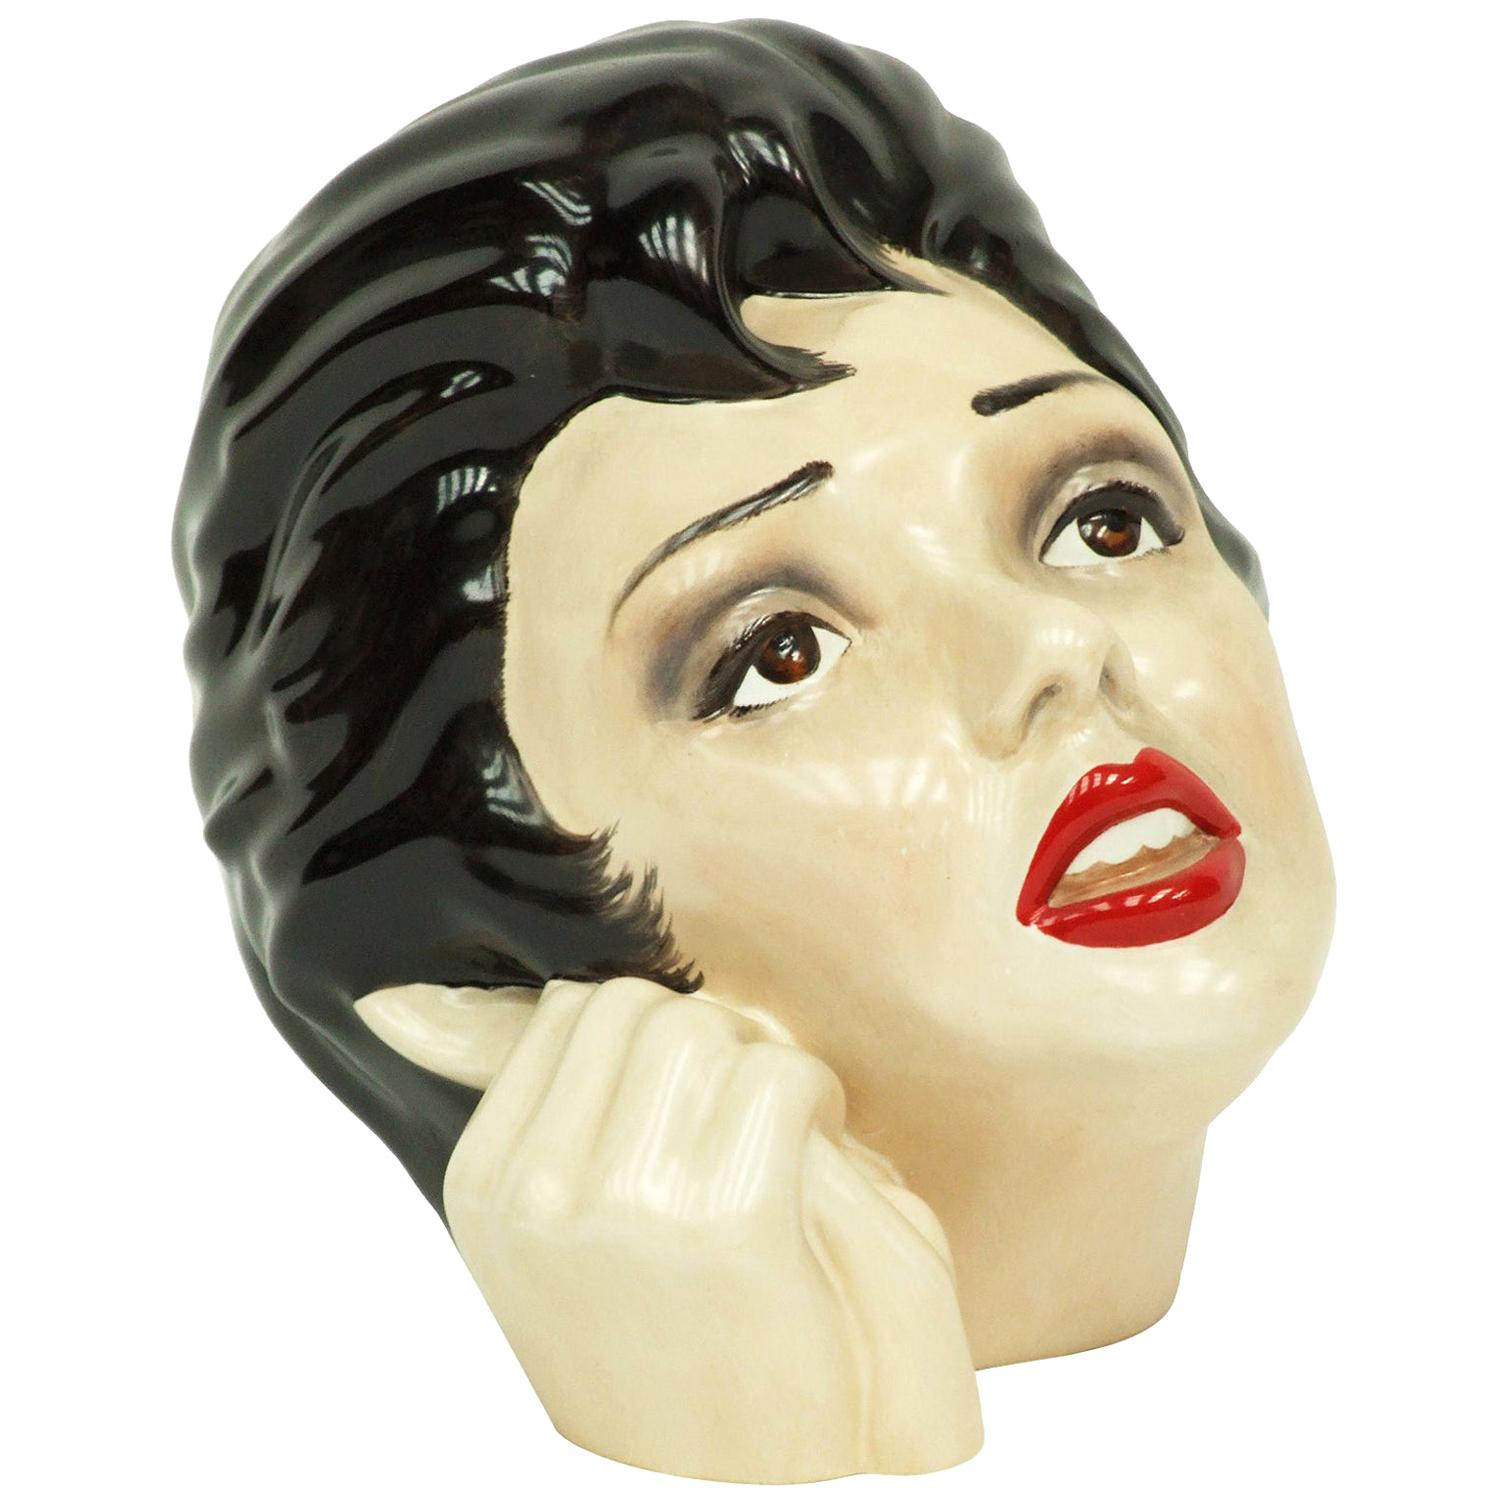 1970s Judy Garland Ceramic Bust by Morris Rushton for Fleshpots